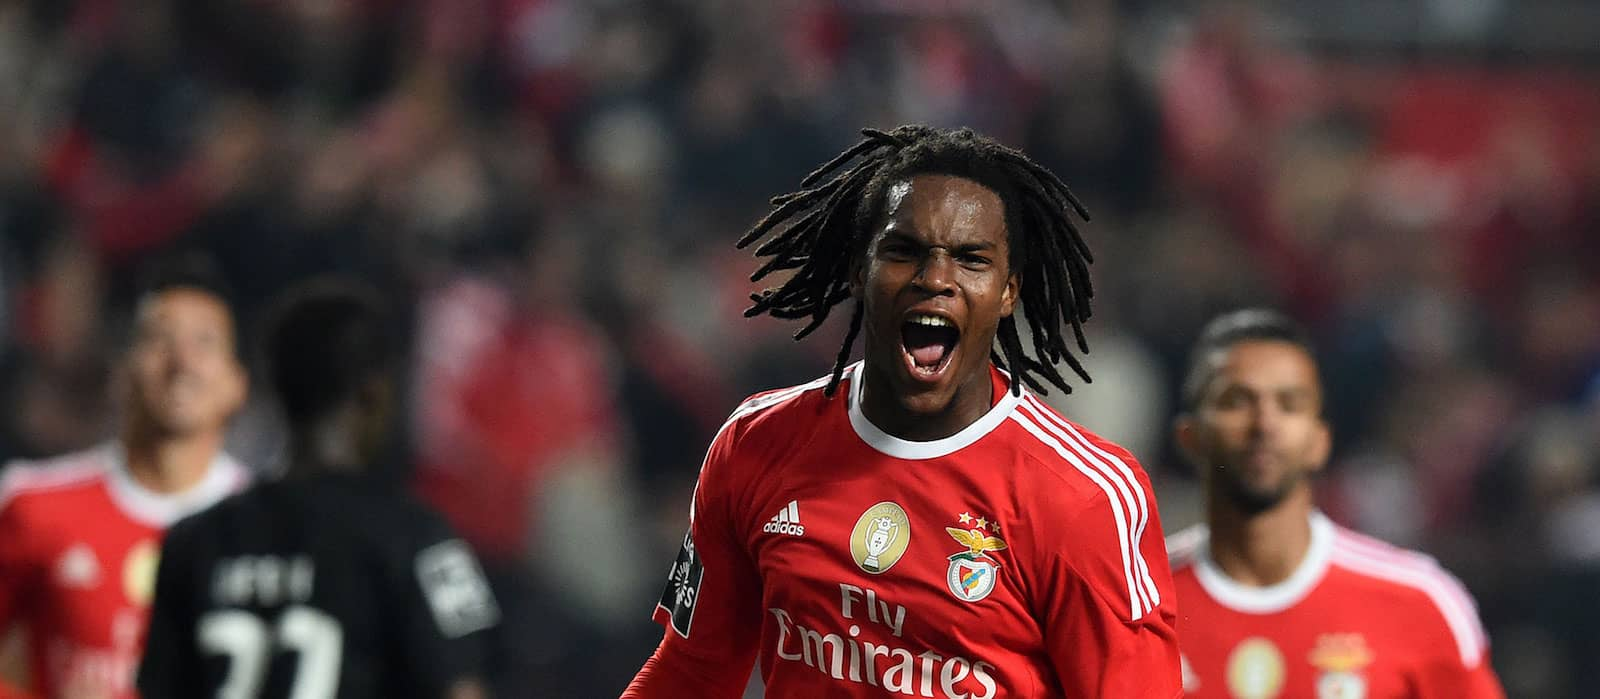 LIVE: Man United news, transfers and gossip – Psychologist says Renato Sanches has been affected by United news